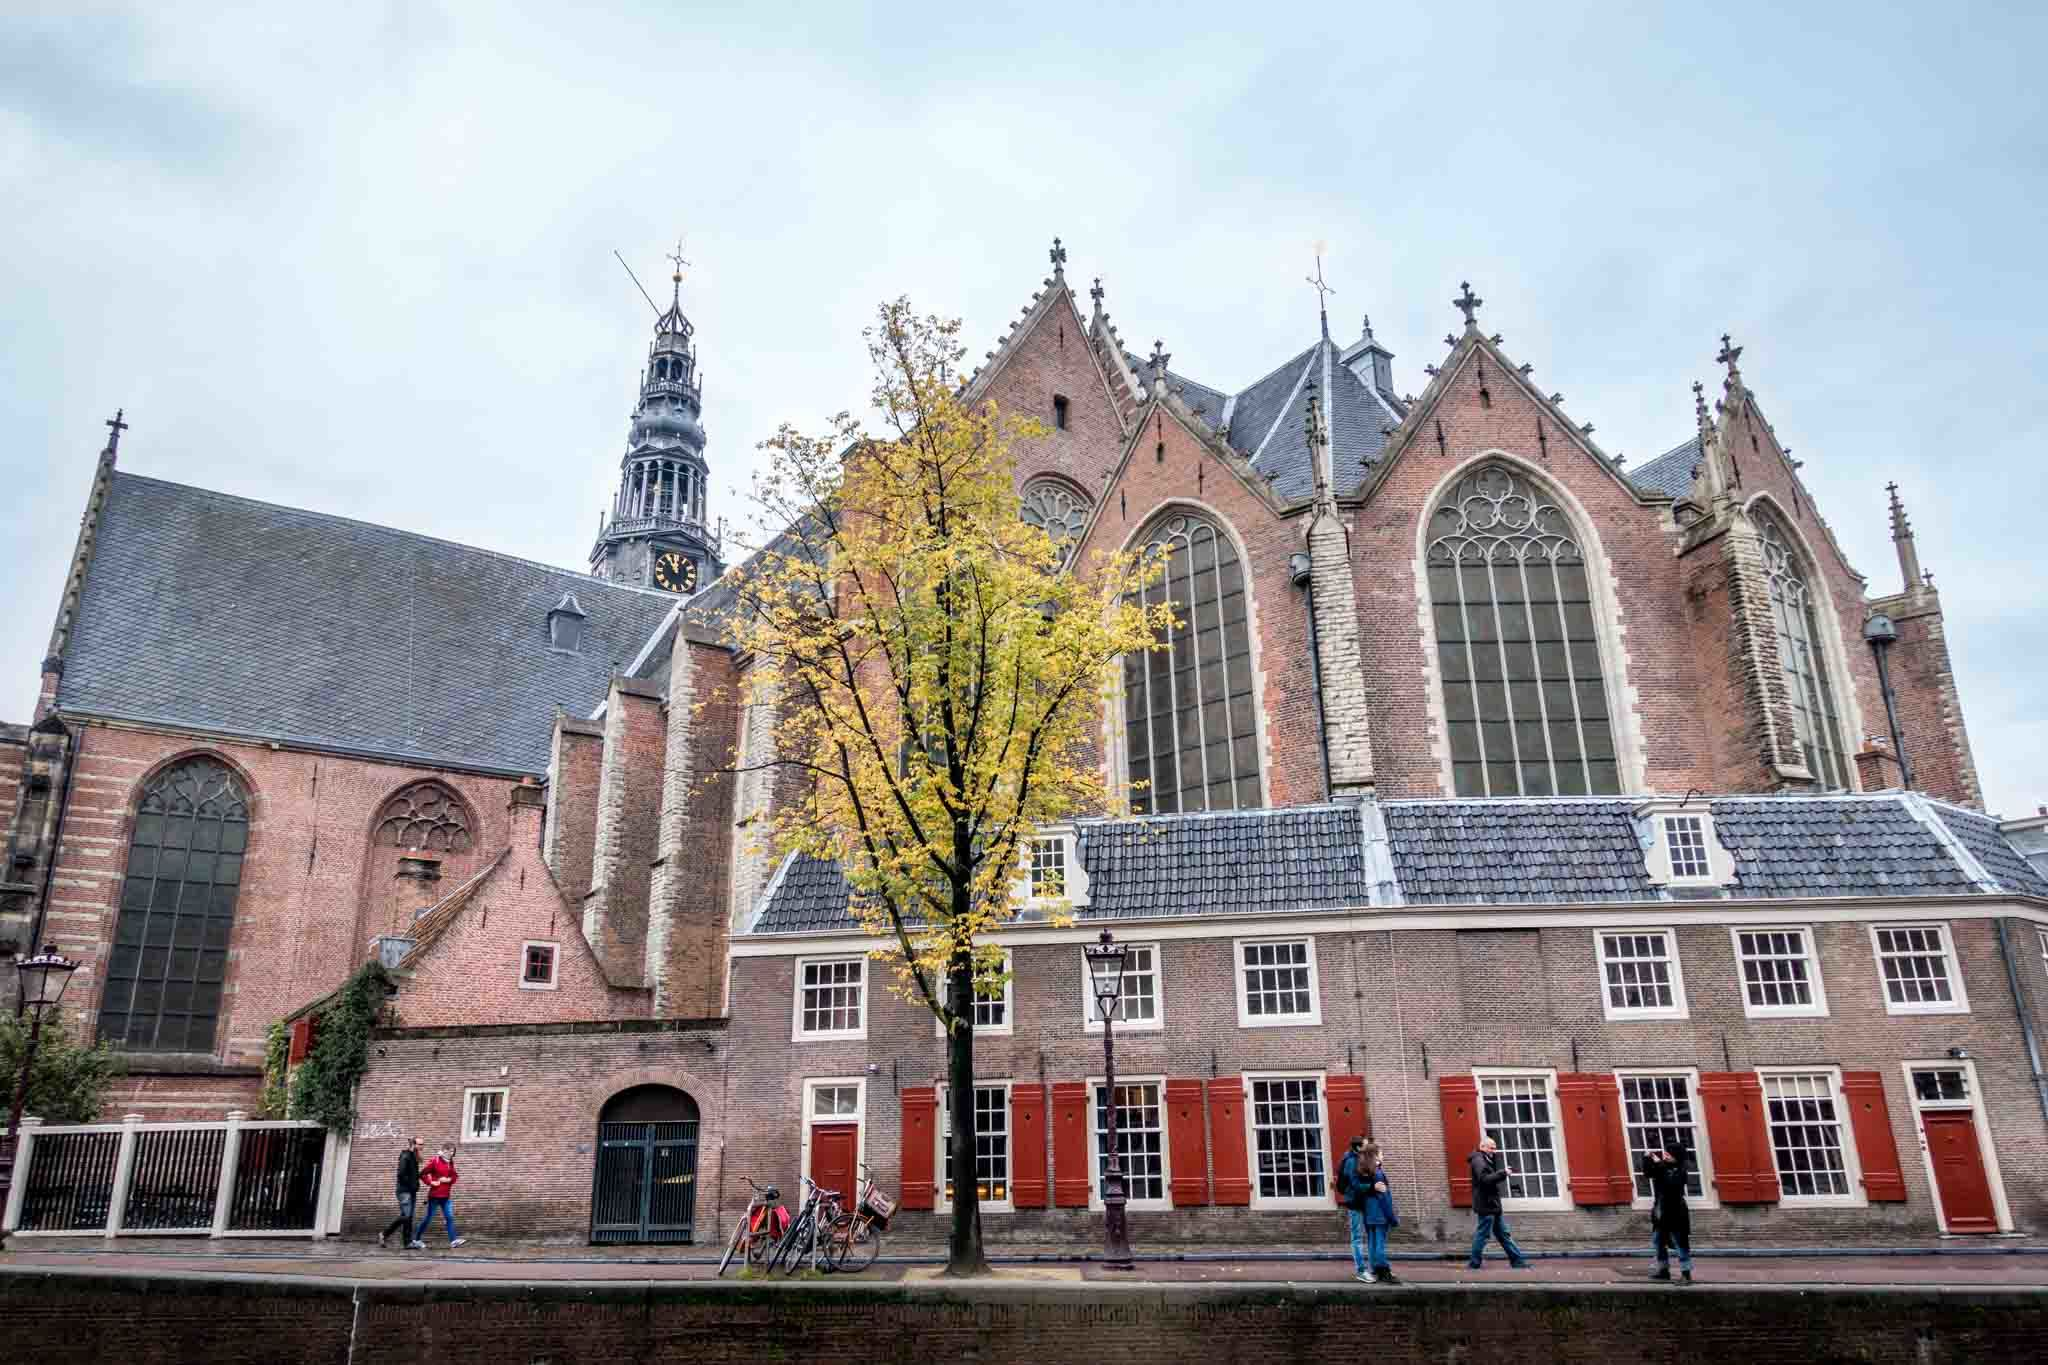 Exterior brick Oude Kerk church with stained glass and steeple